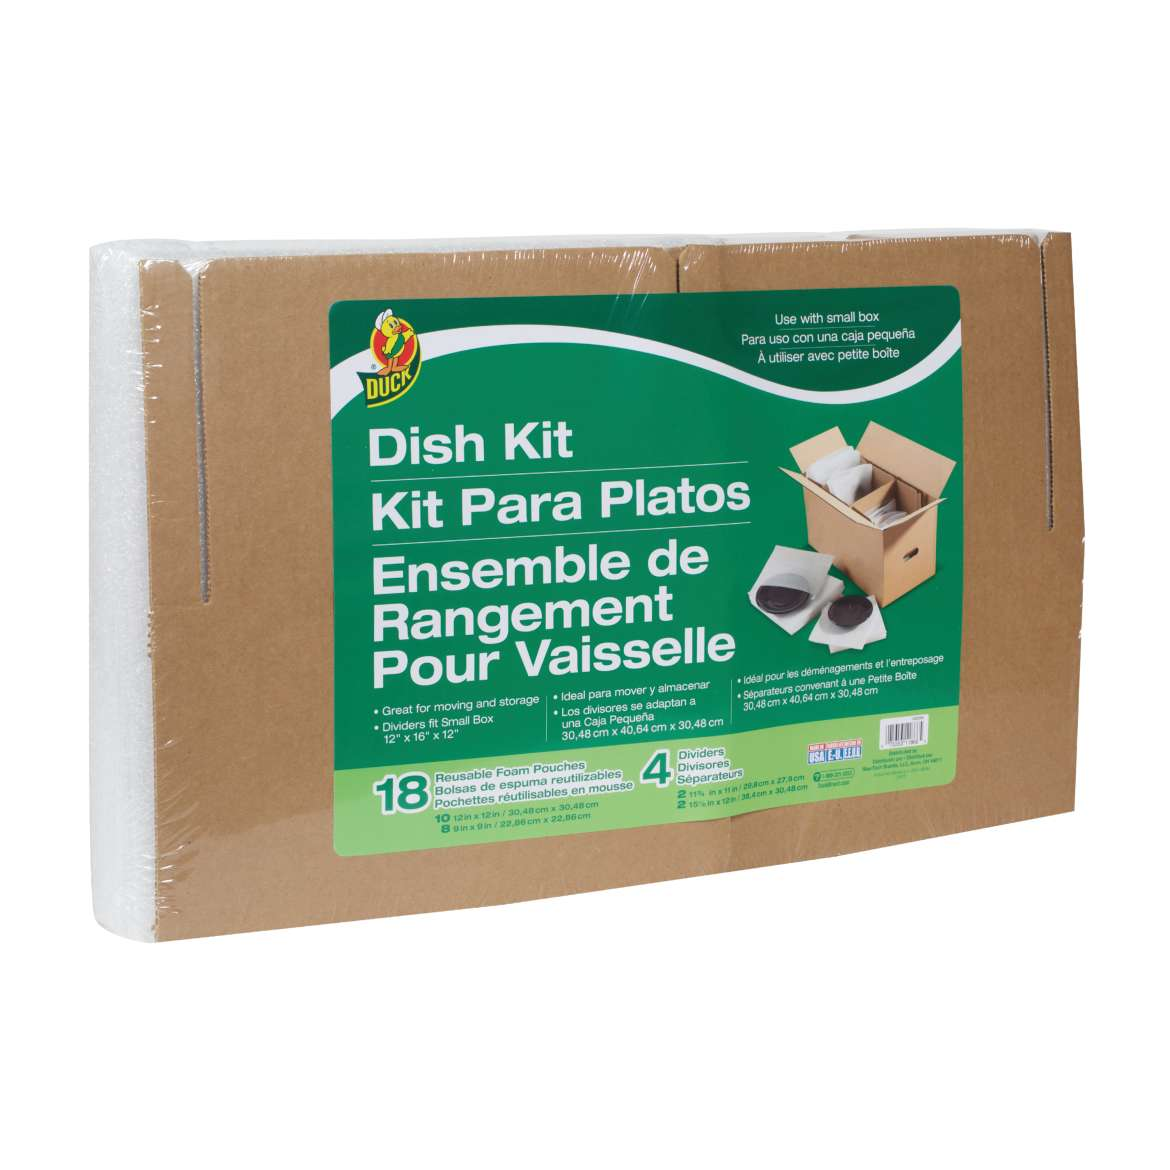 Duck® Brand Dish Kit, 18 Reusable Pouches and 4 Corrugate Dividers (Box Not Included) Image